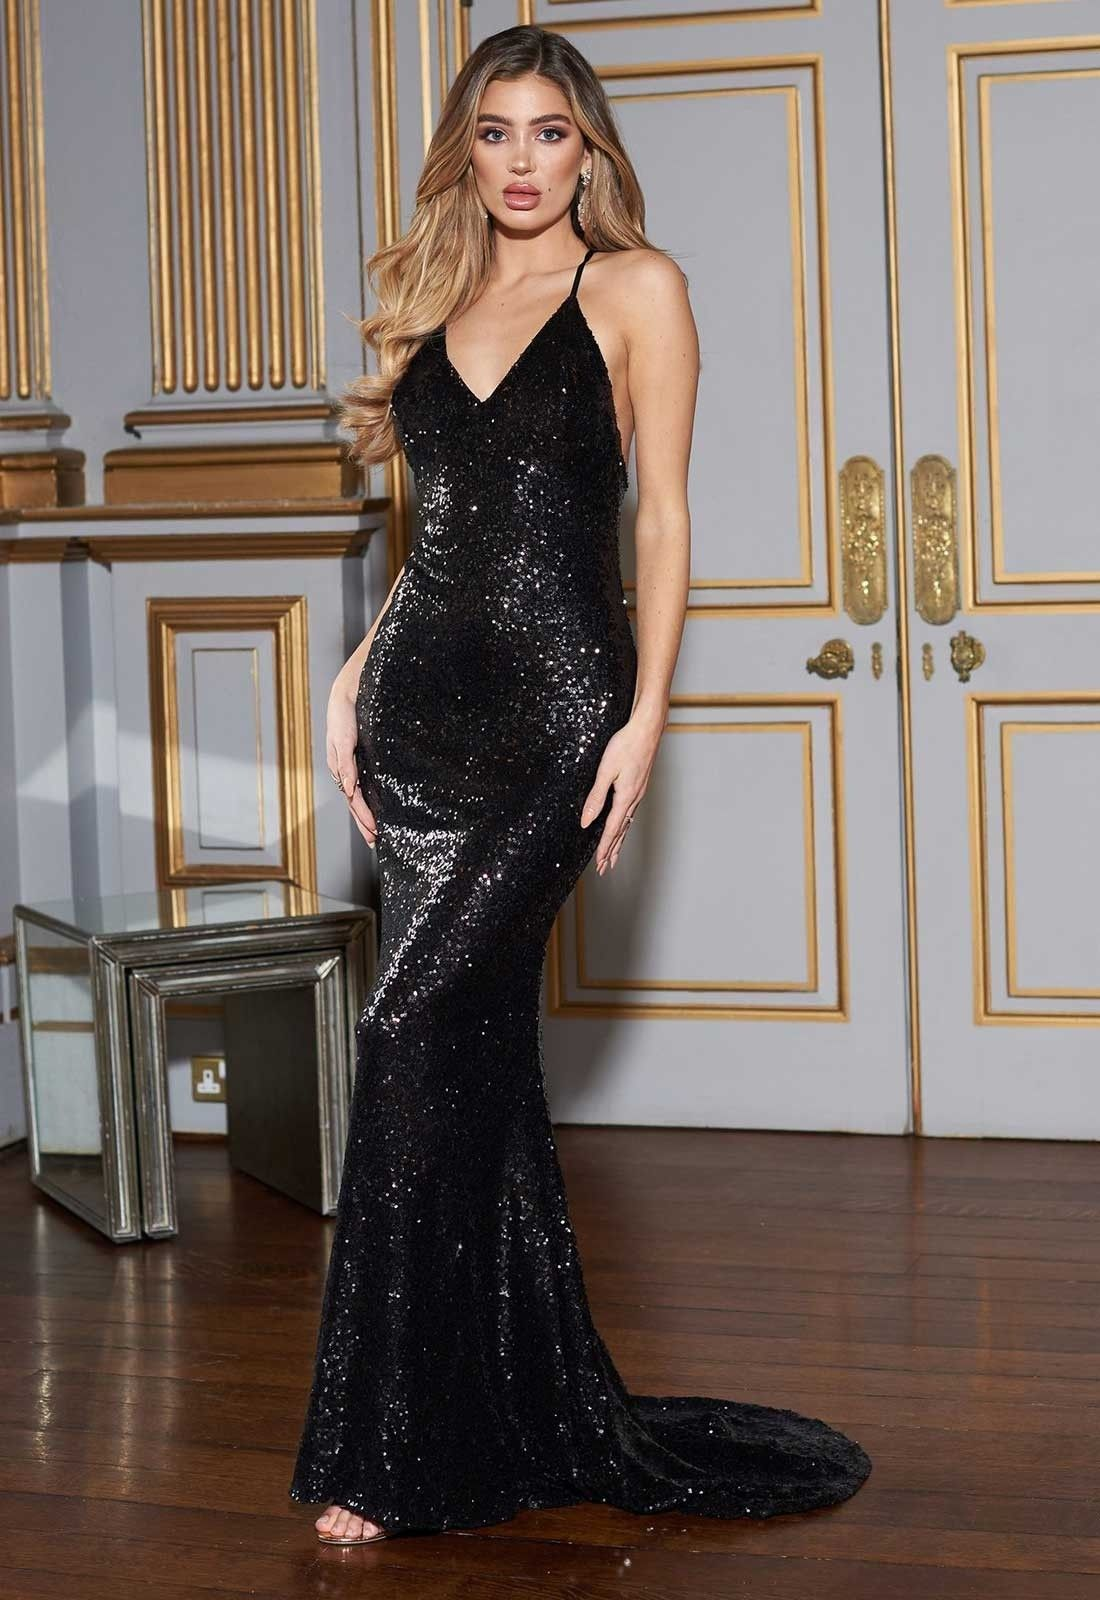 4c166d28422 This stunning sequined floor-length gown from Club L London will definitely  turn heads this